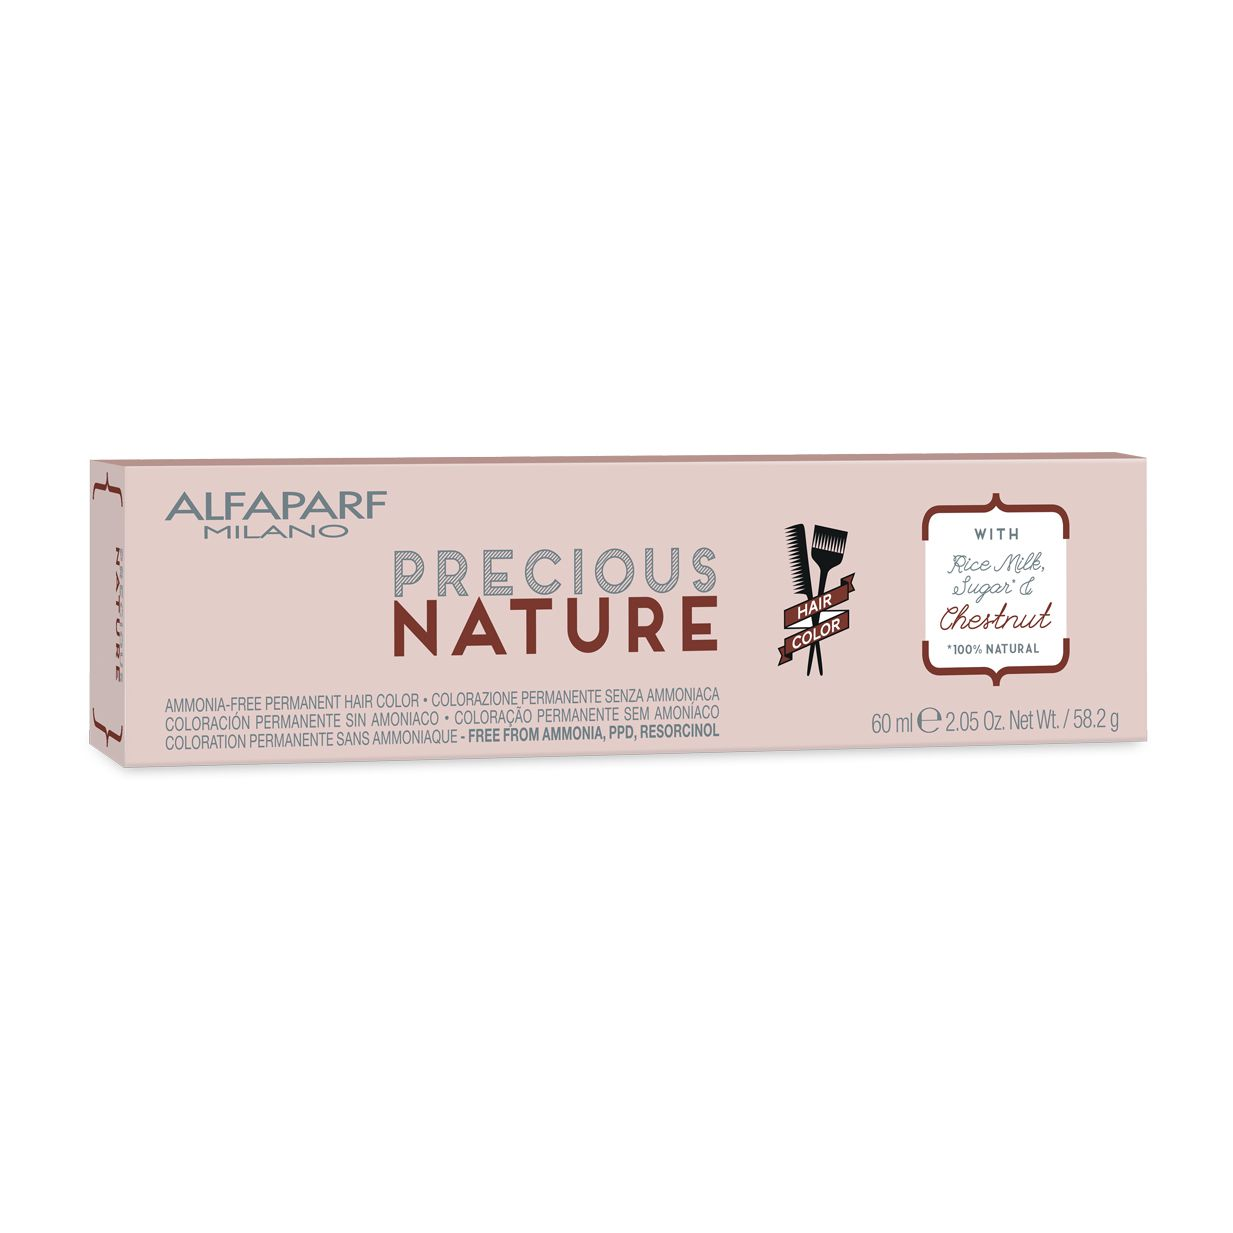 Alfaparf Milano Precious Nature Hair Color Natural Creme de Coloração 7NI Louro Médio Intenso 60ml